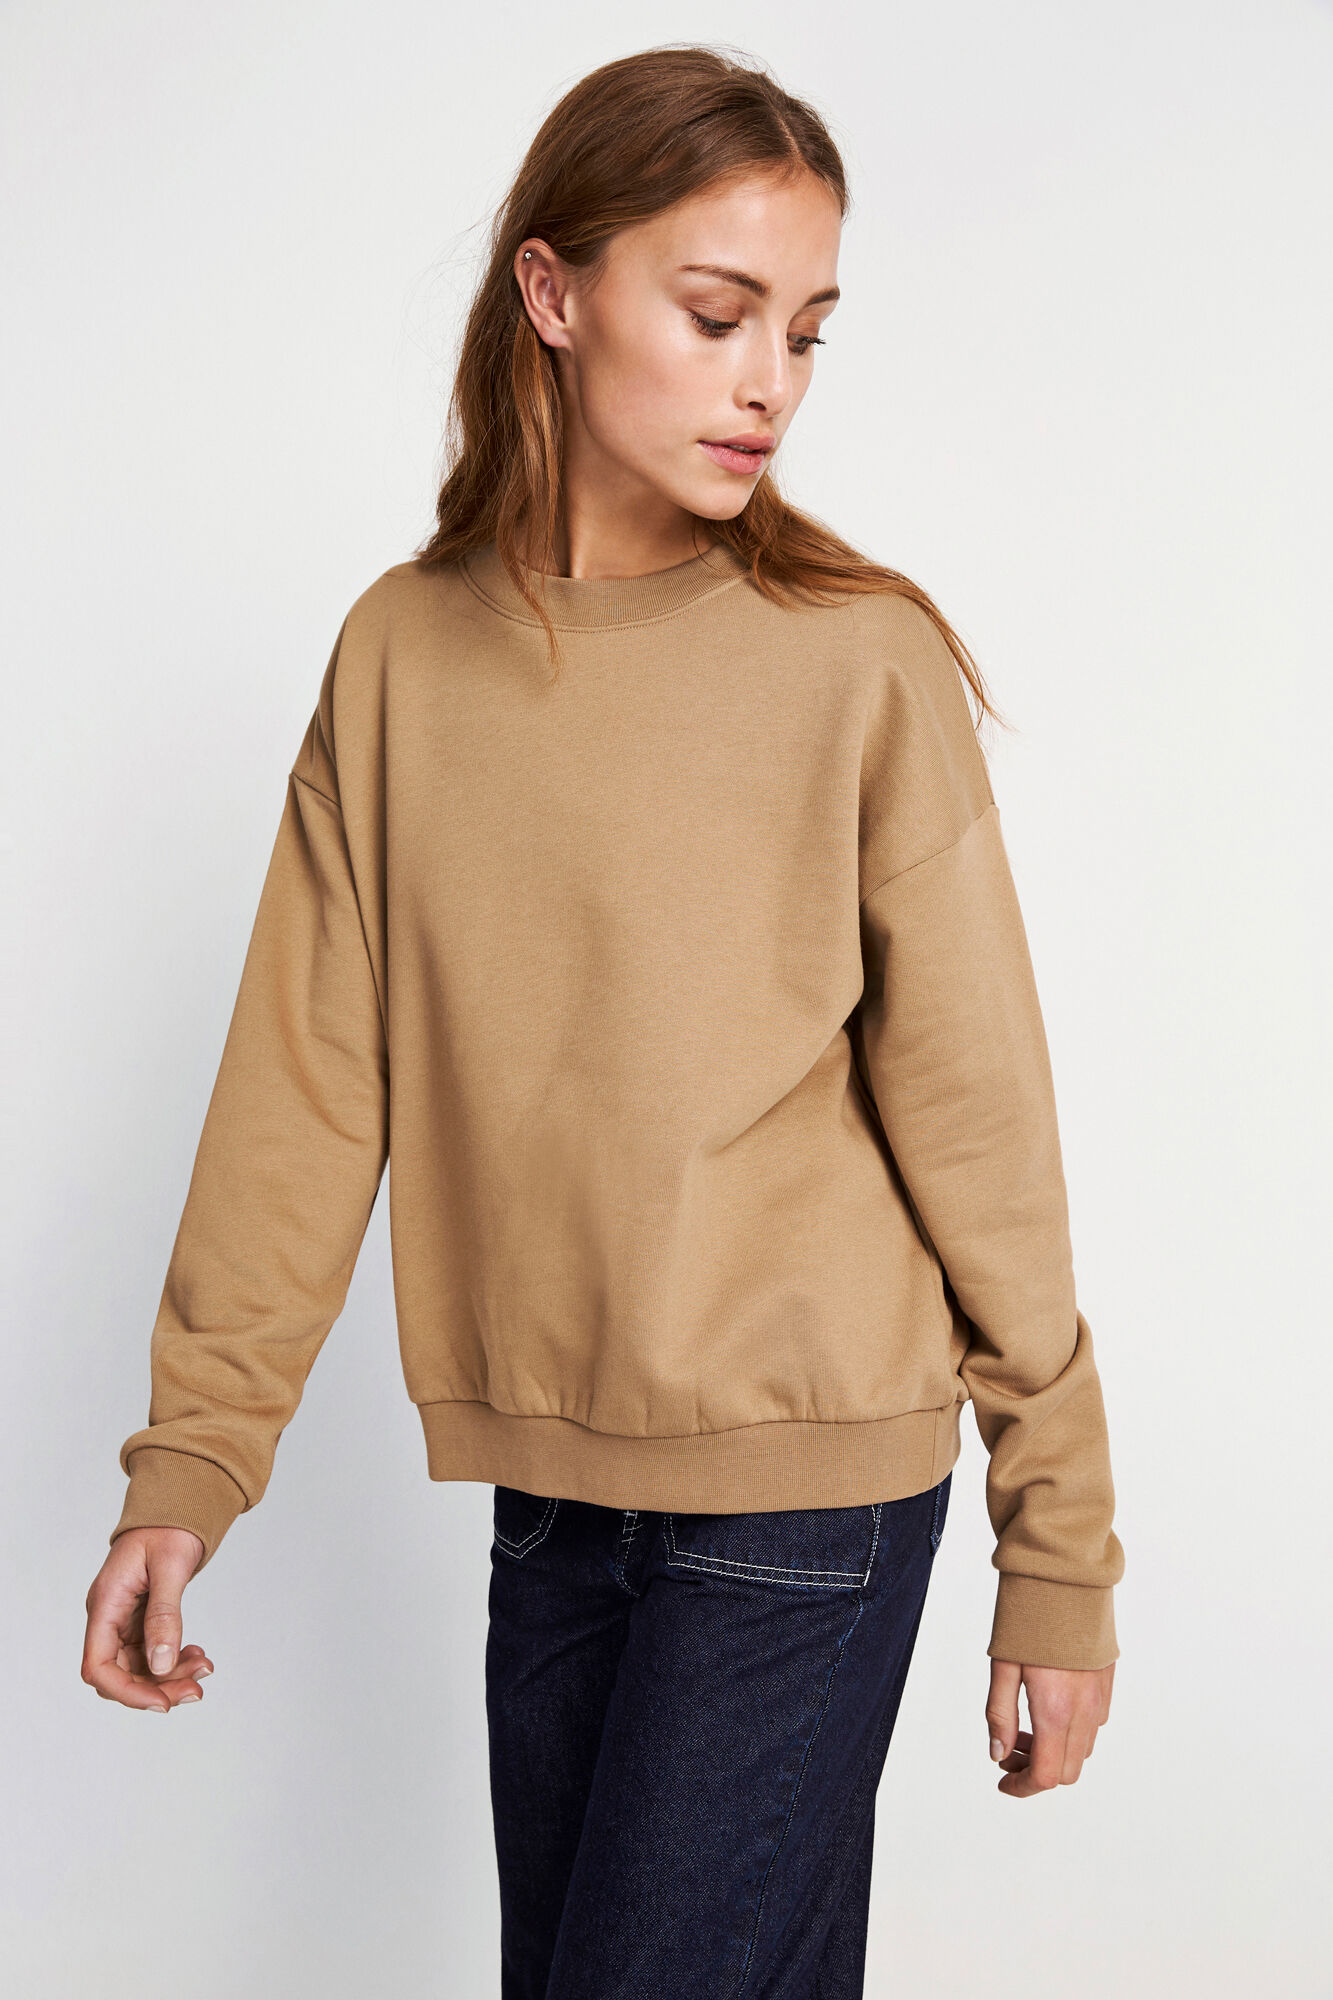 ENSYMBOLIC LS SWEAT